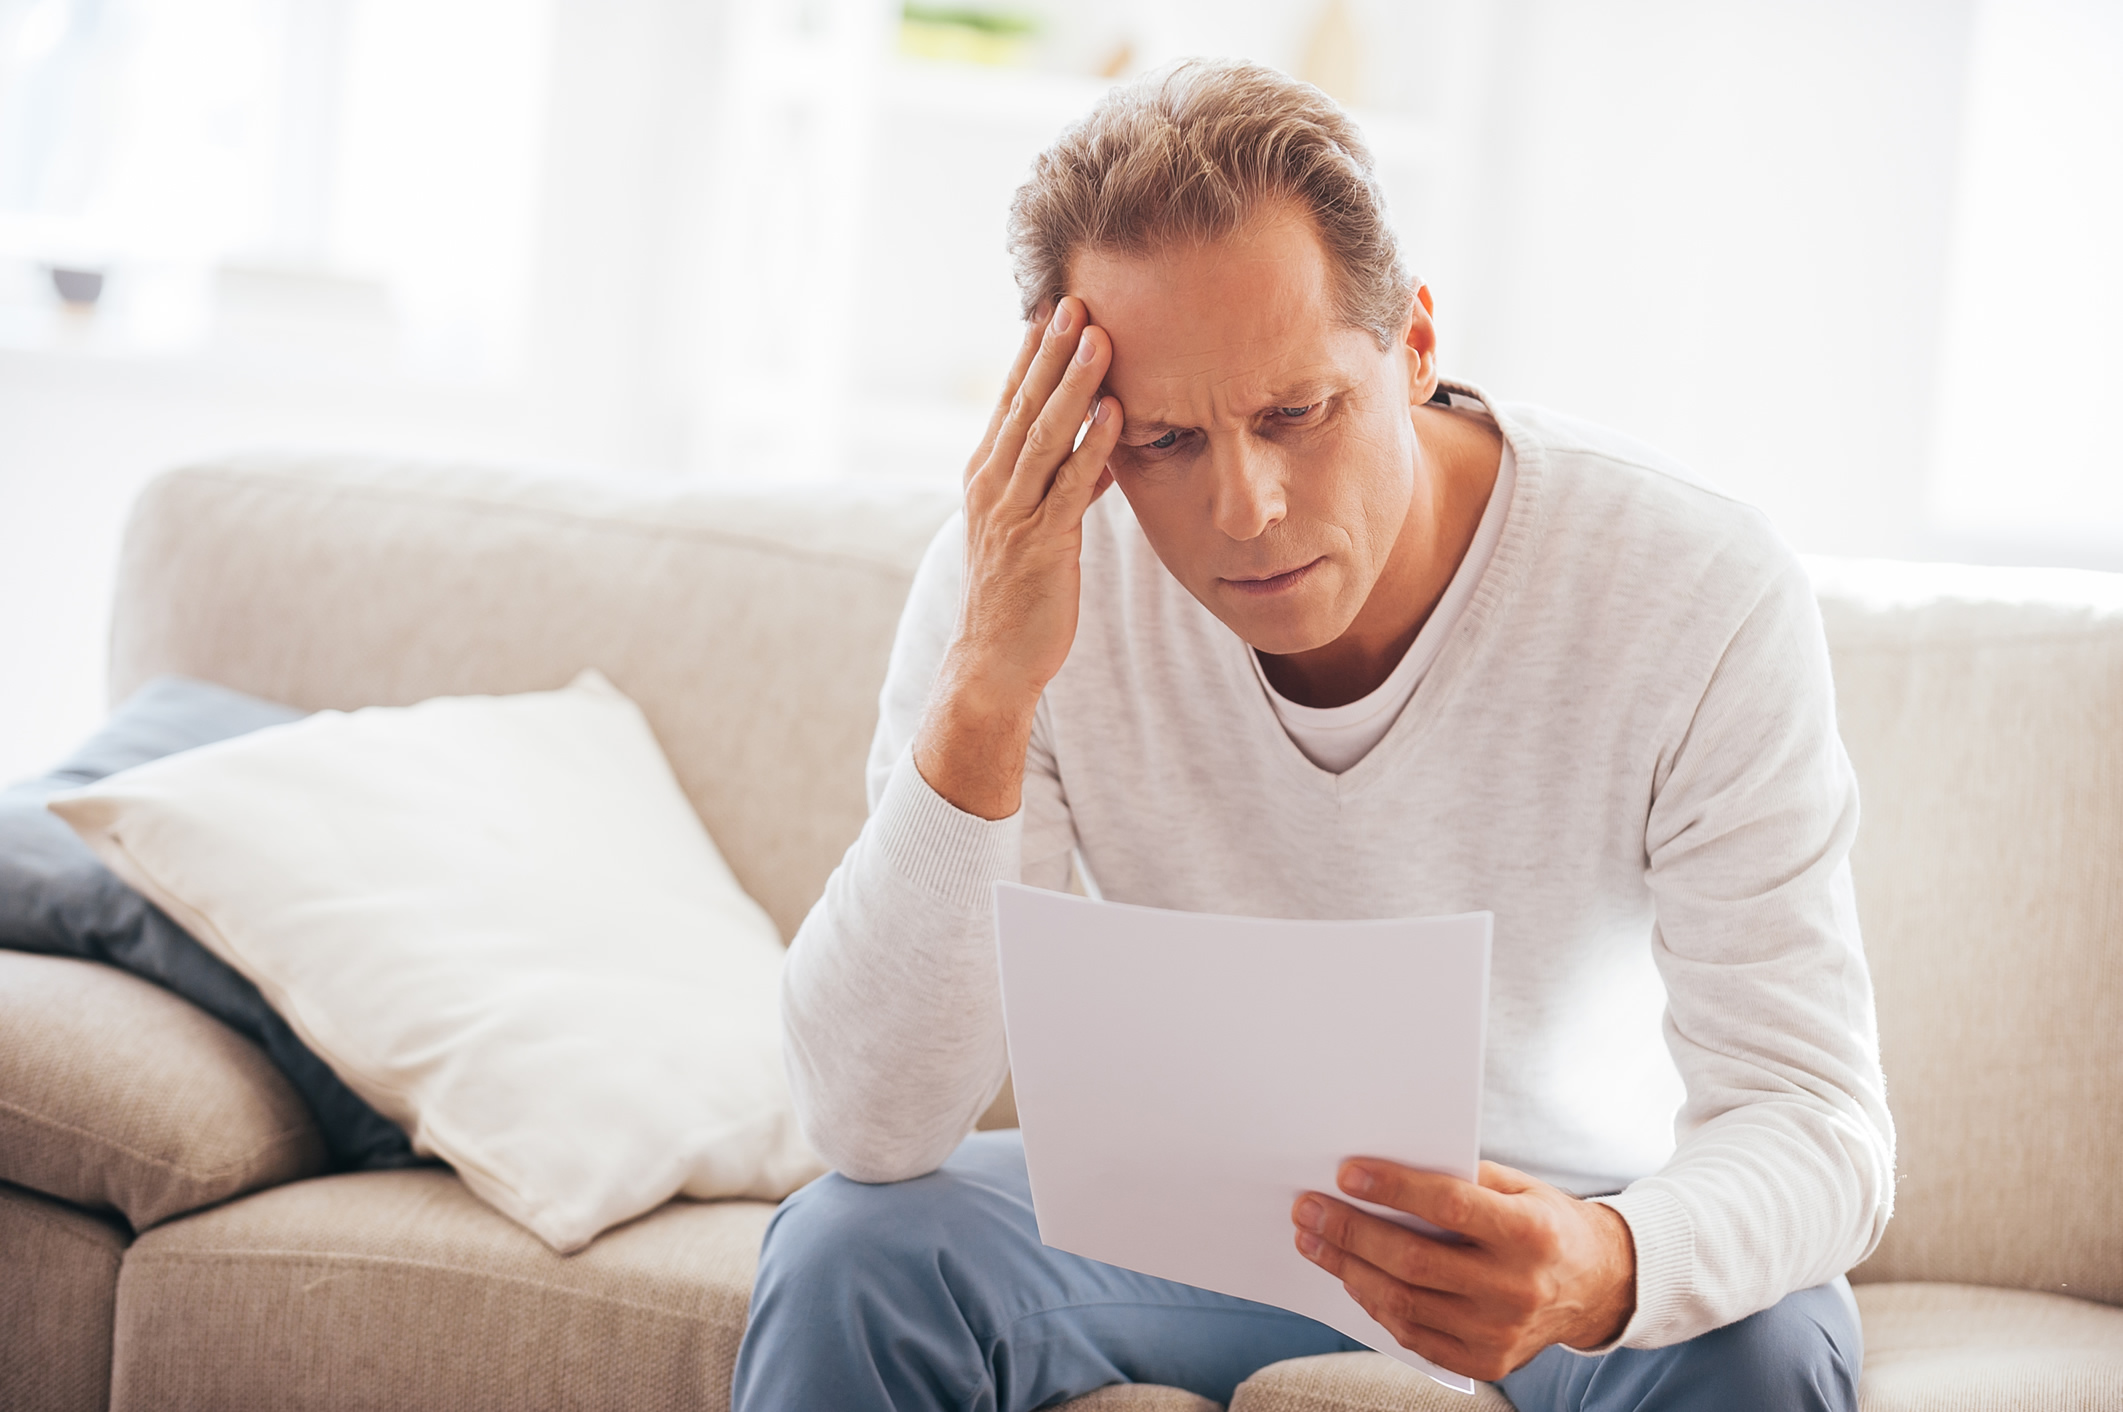 Man struggling to read cable bill